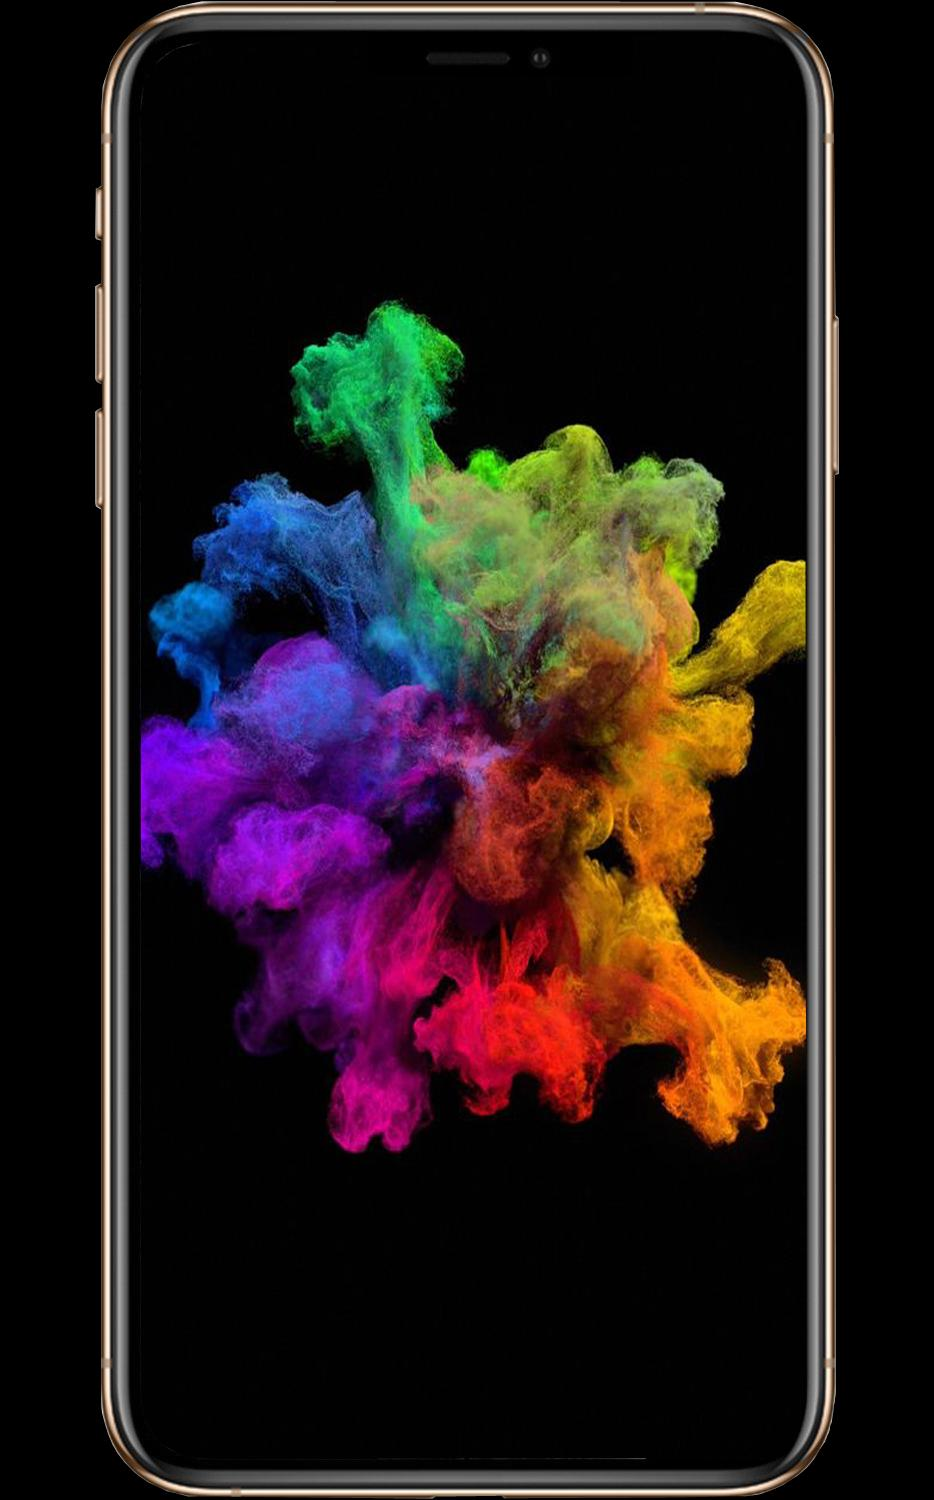 Hd Wallpaper Iphone X For Android Apk Download